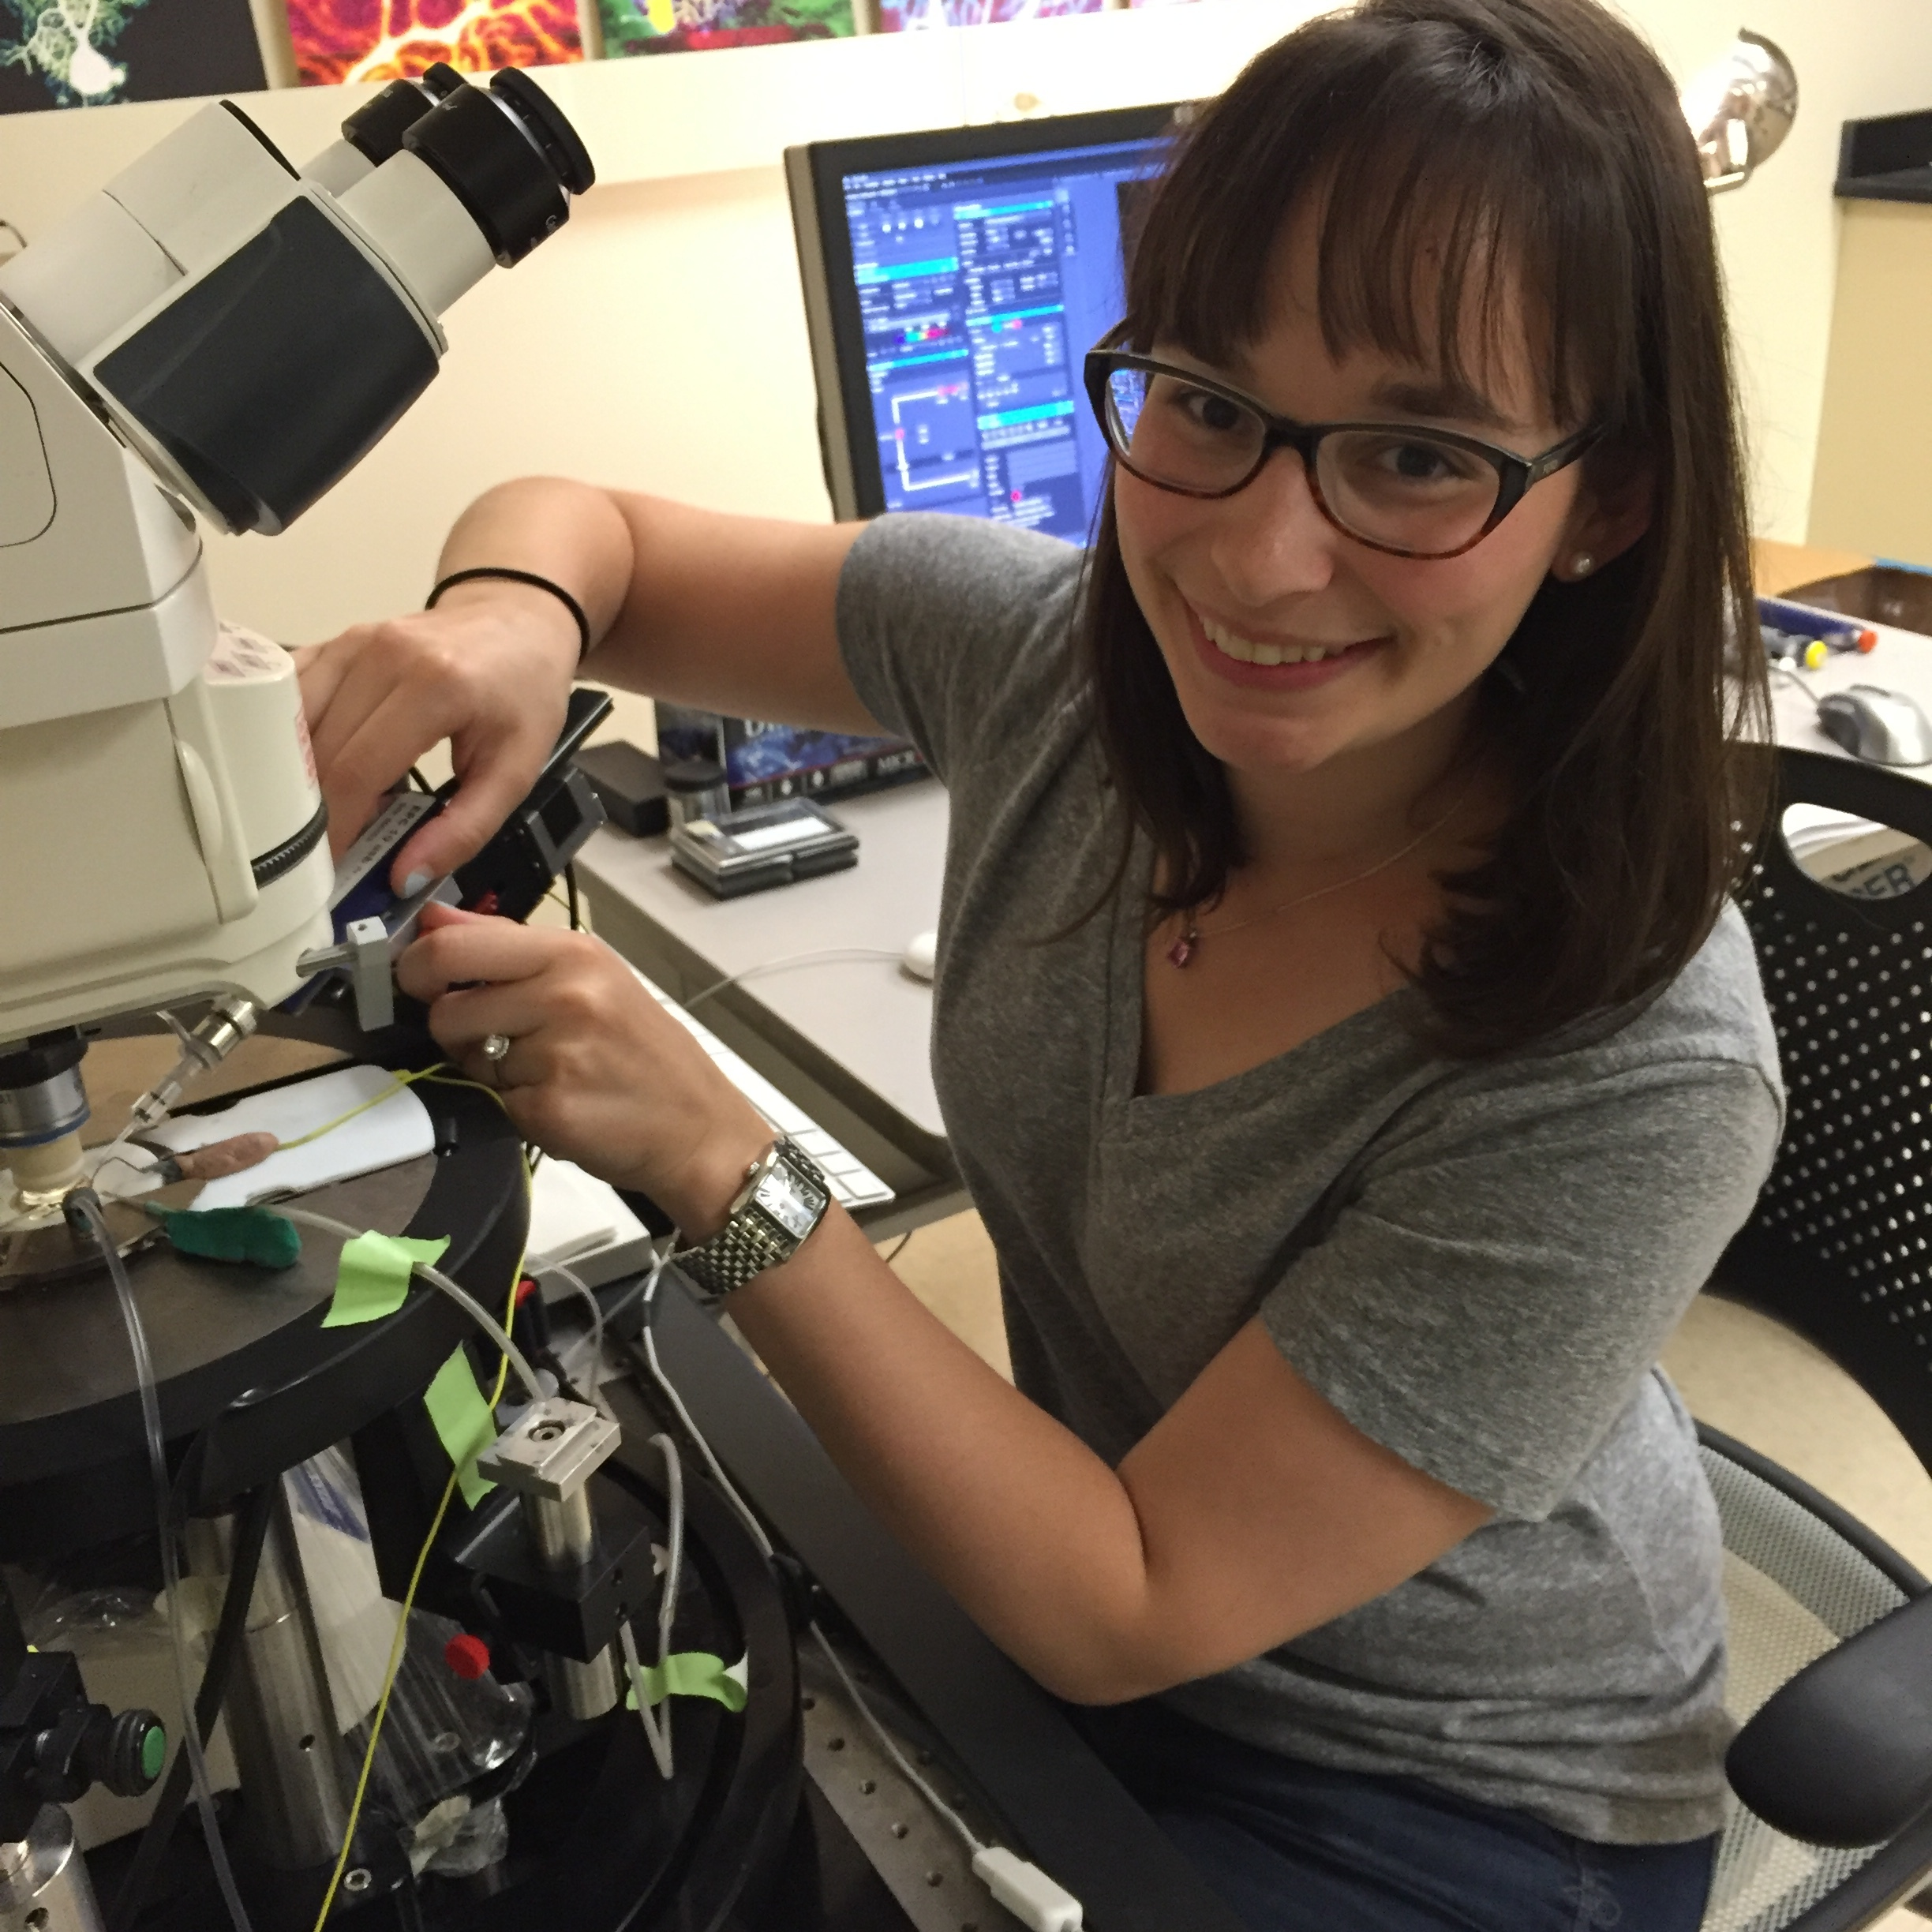 Dana, performing experiments at the microscope in the Hansel Lab at The University of Chicago